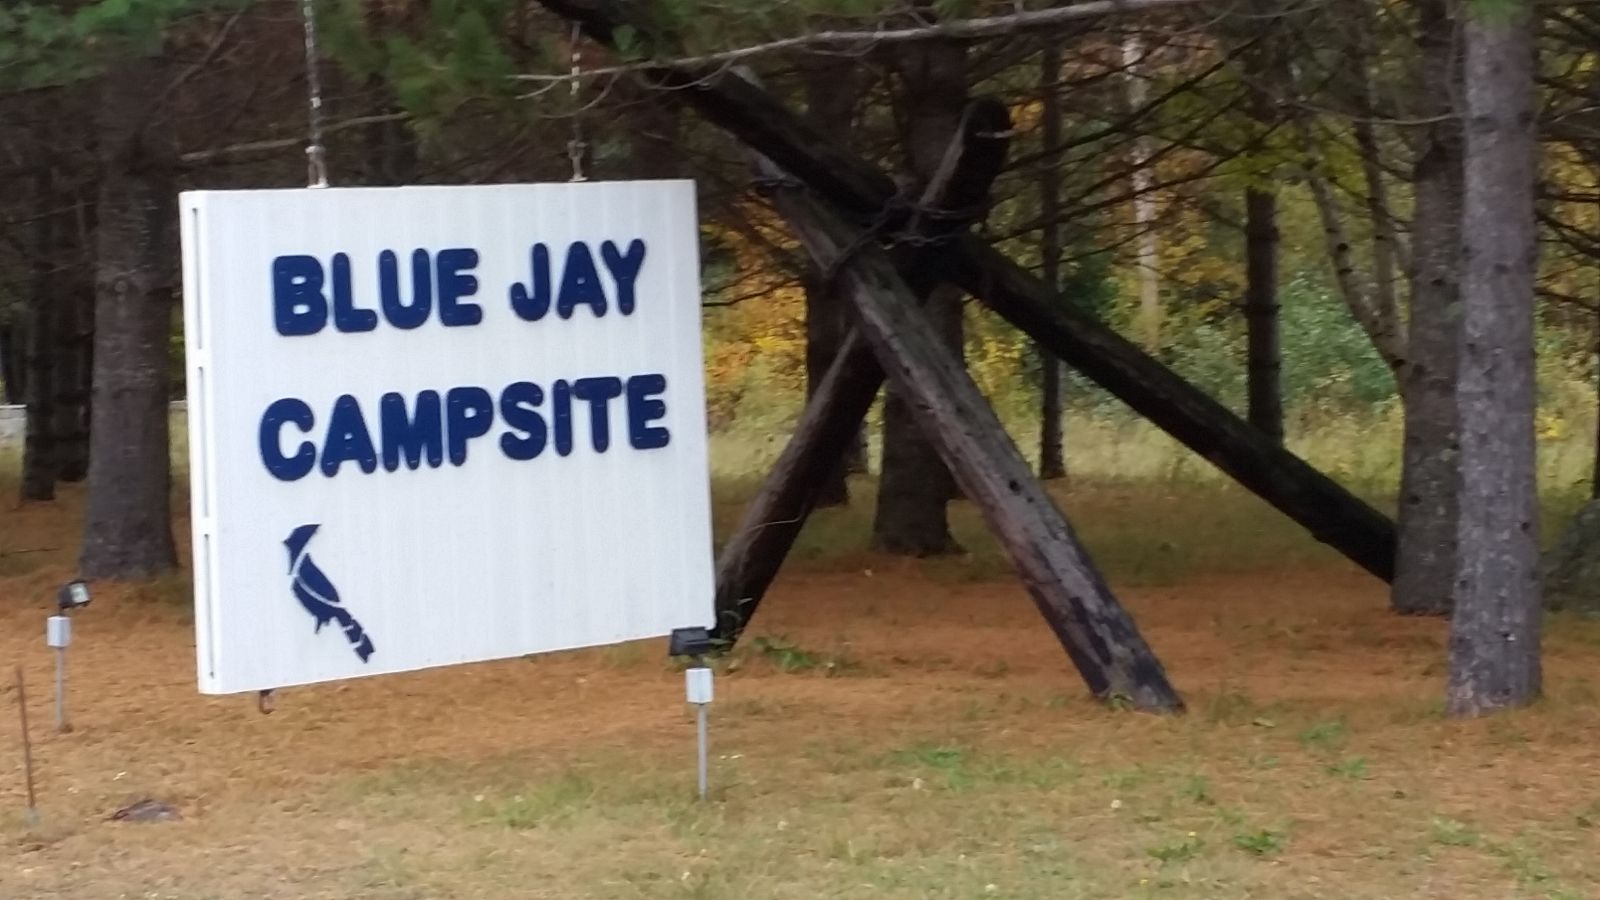 Blue Jay Campsite now I can head home!